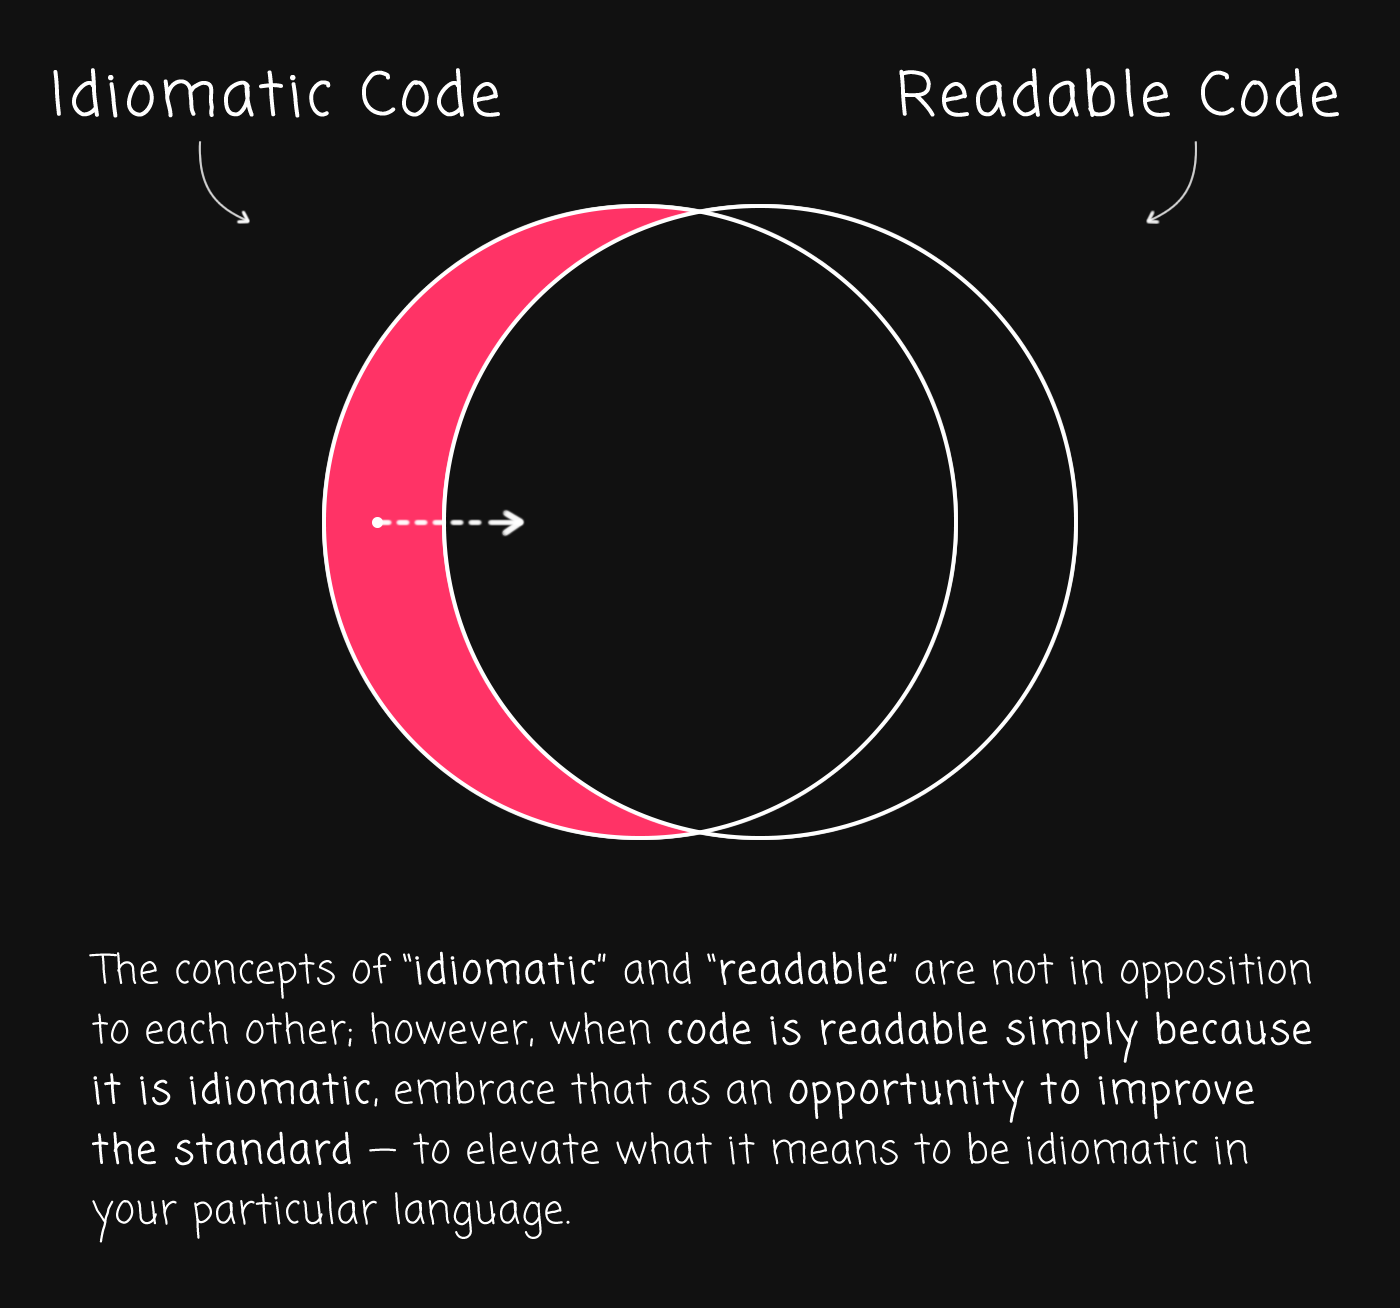 Favor readable code over idiomatic code.